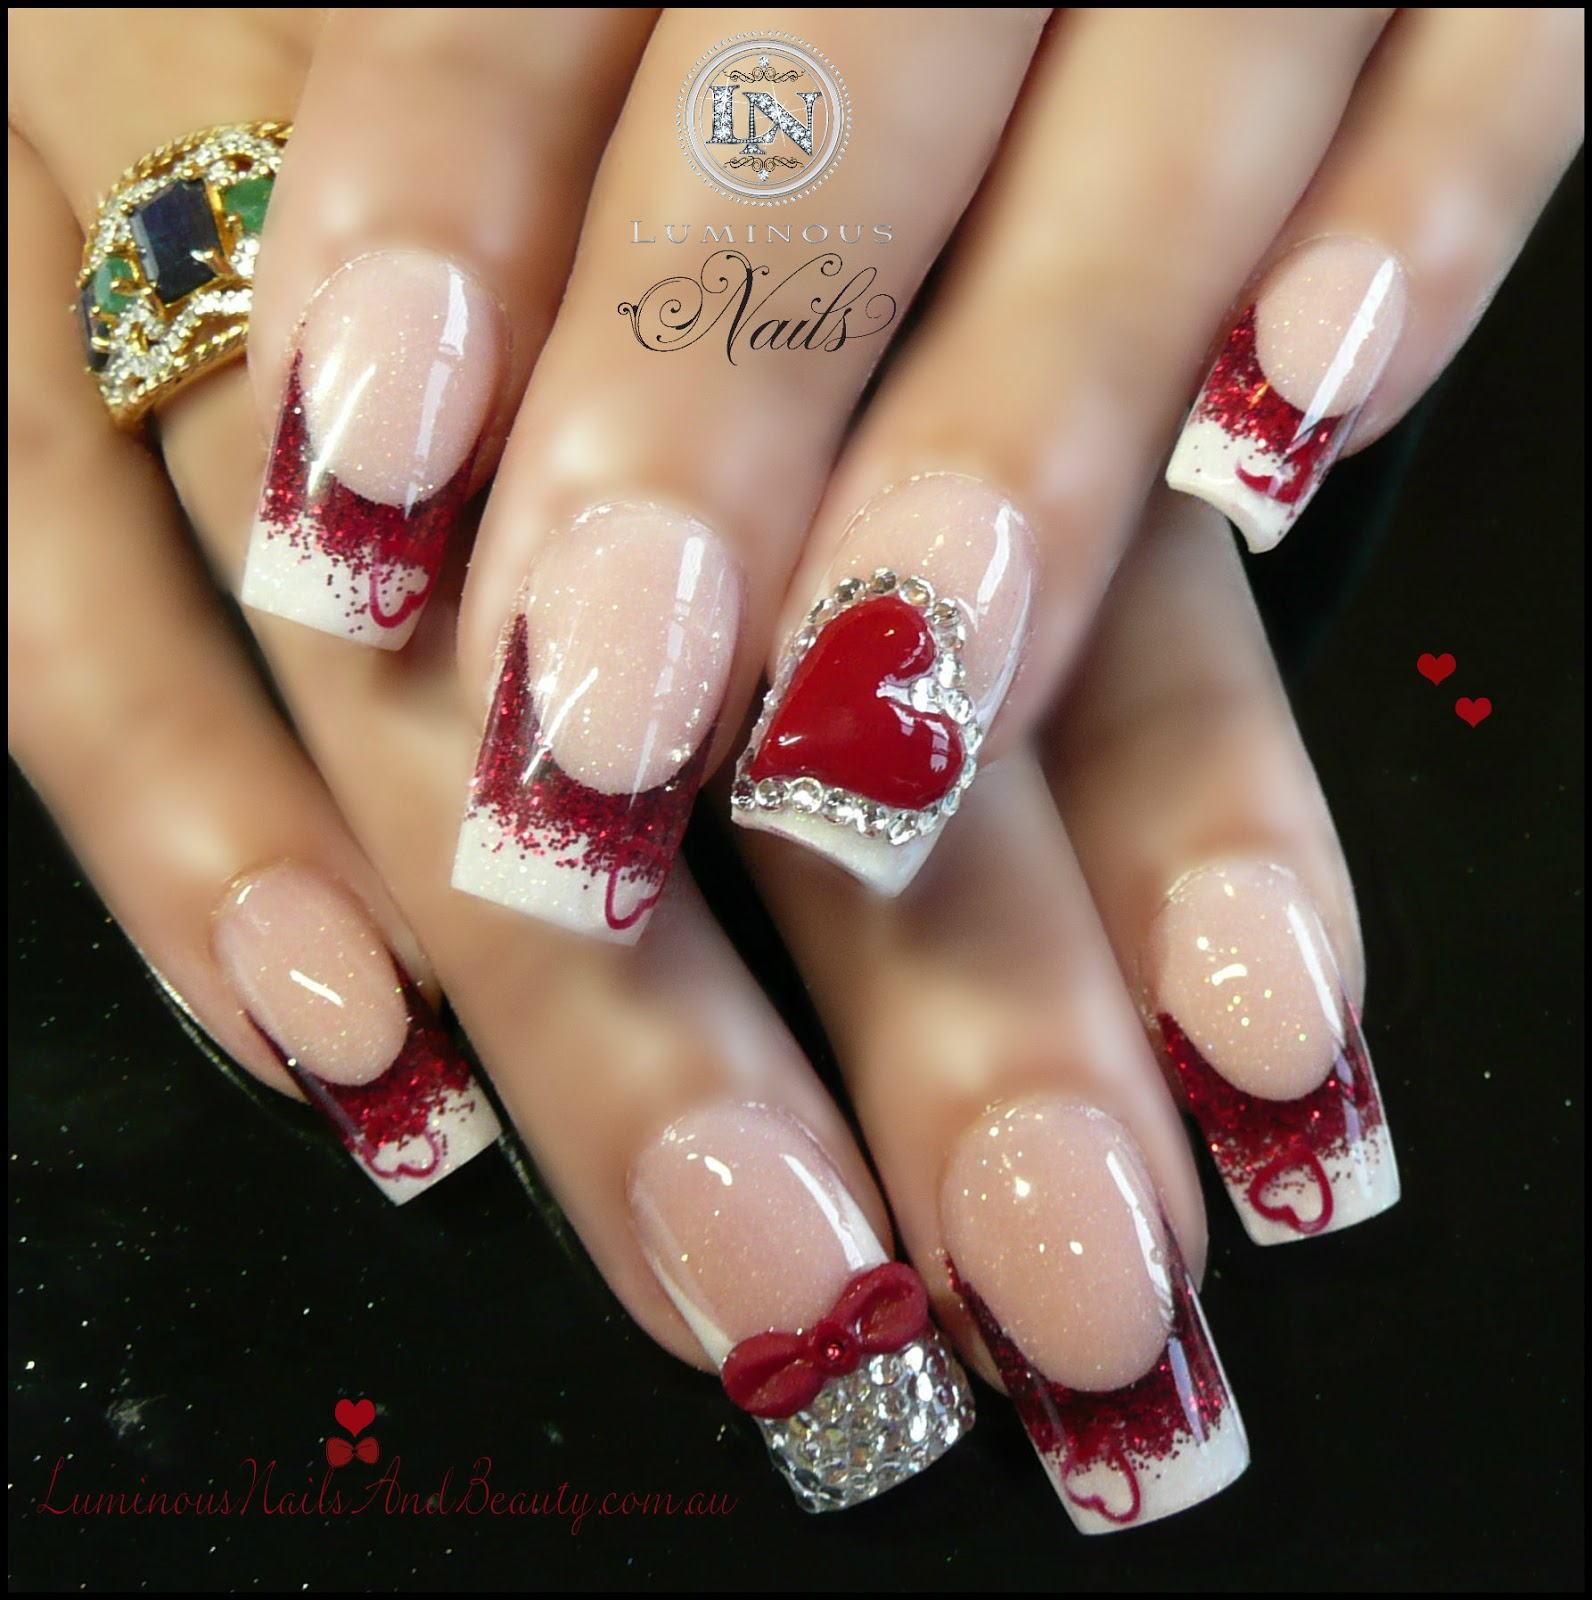 luminous nails and beauty gold coast queensland acrylic nails gel nails sculptured